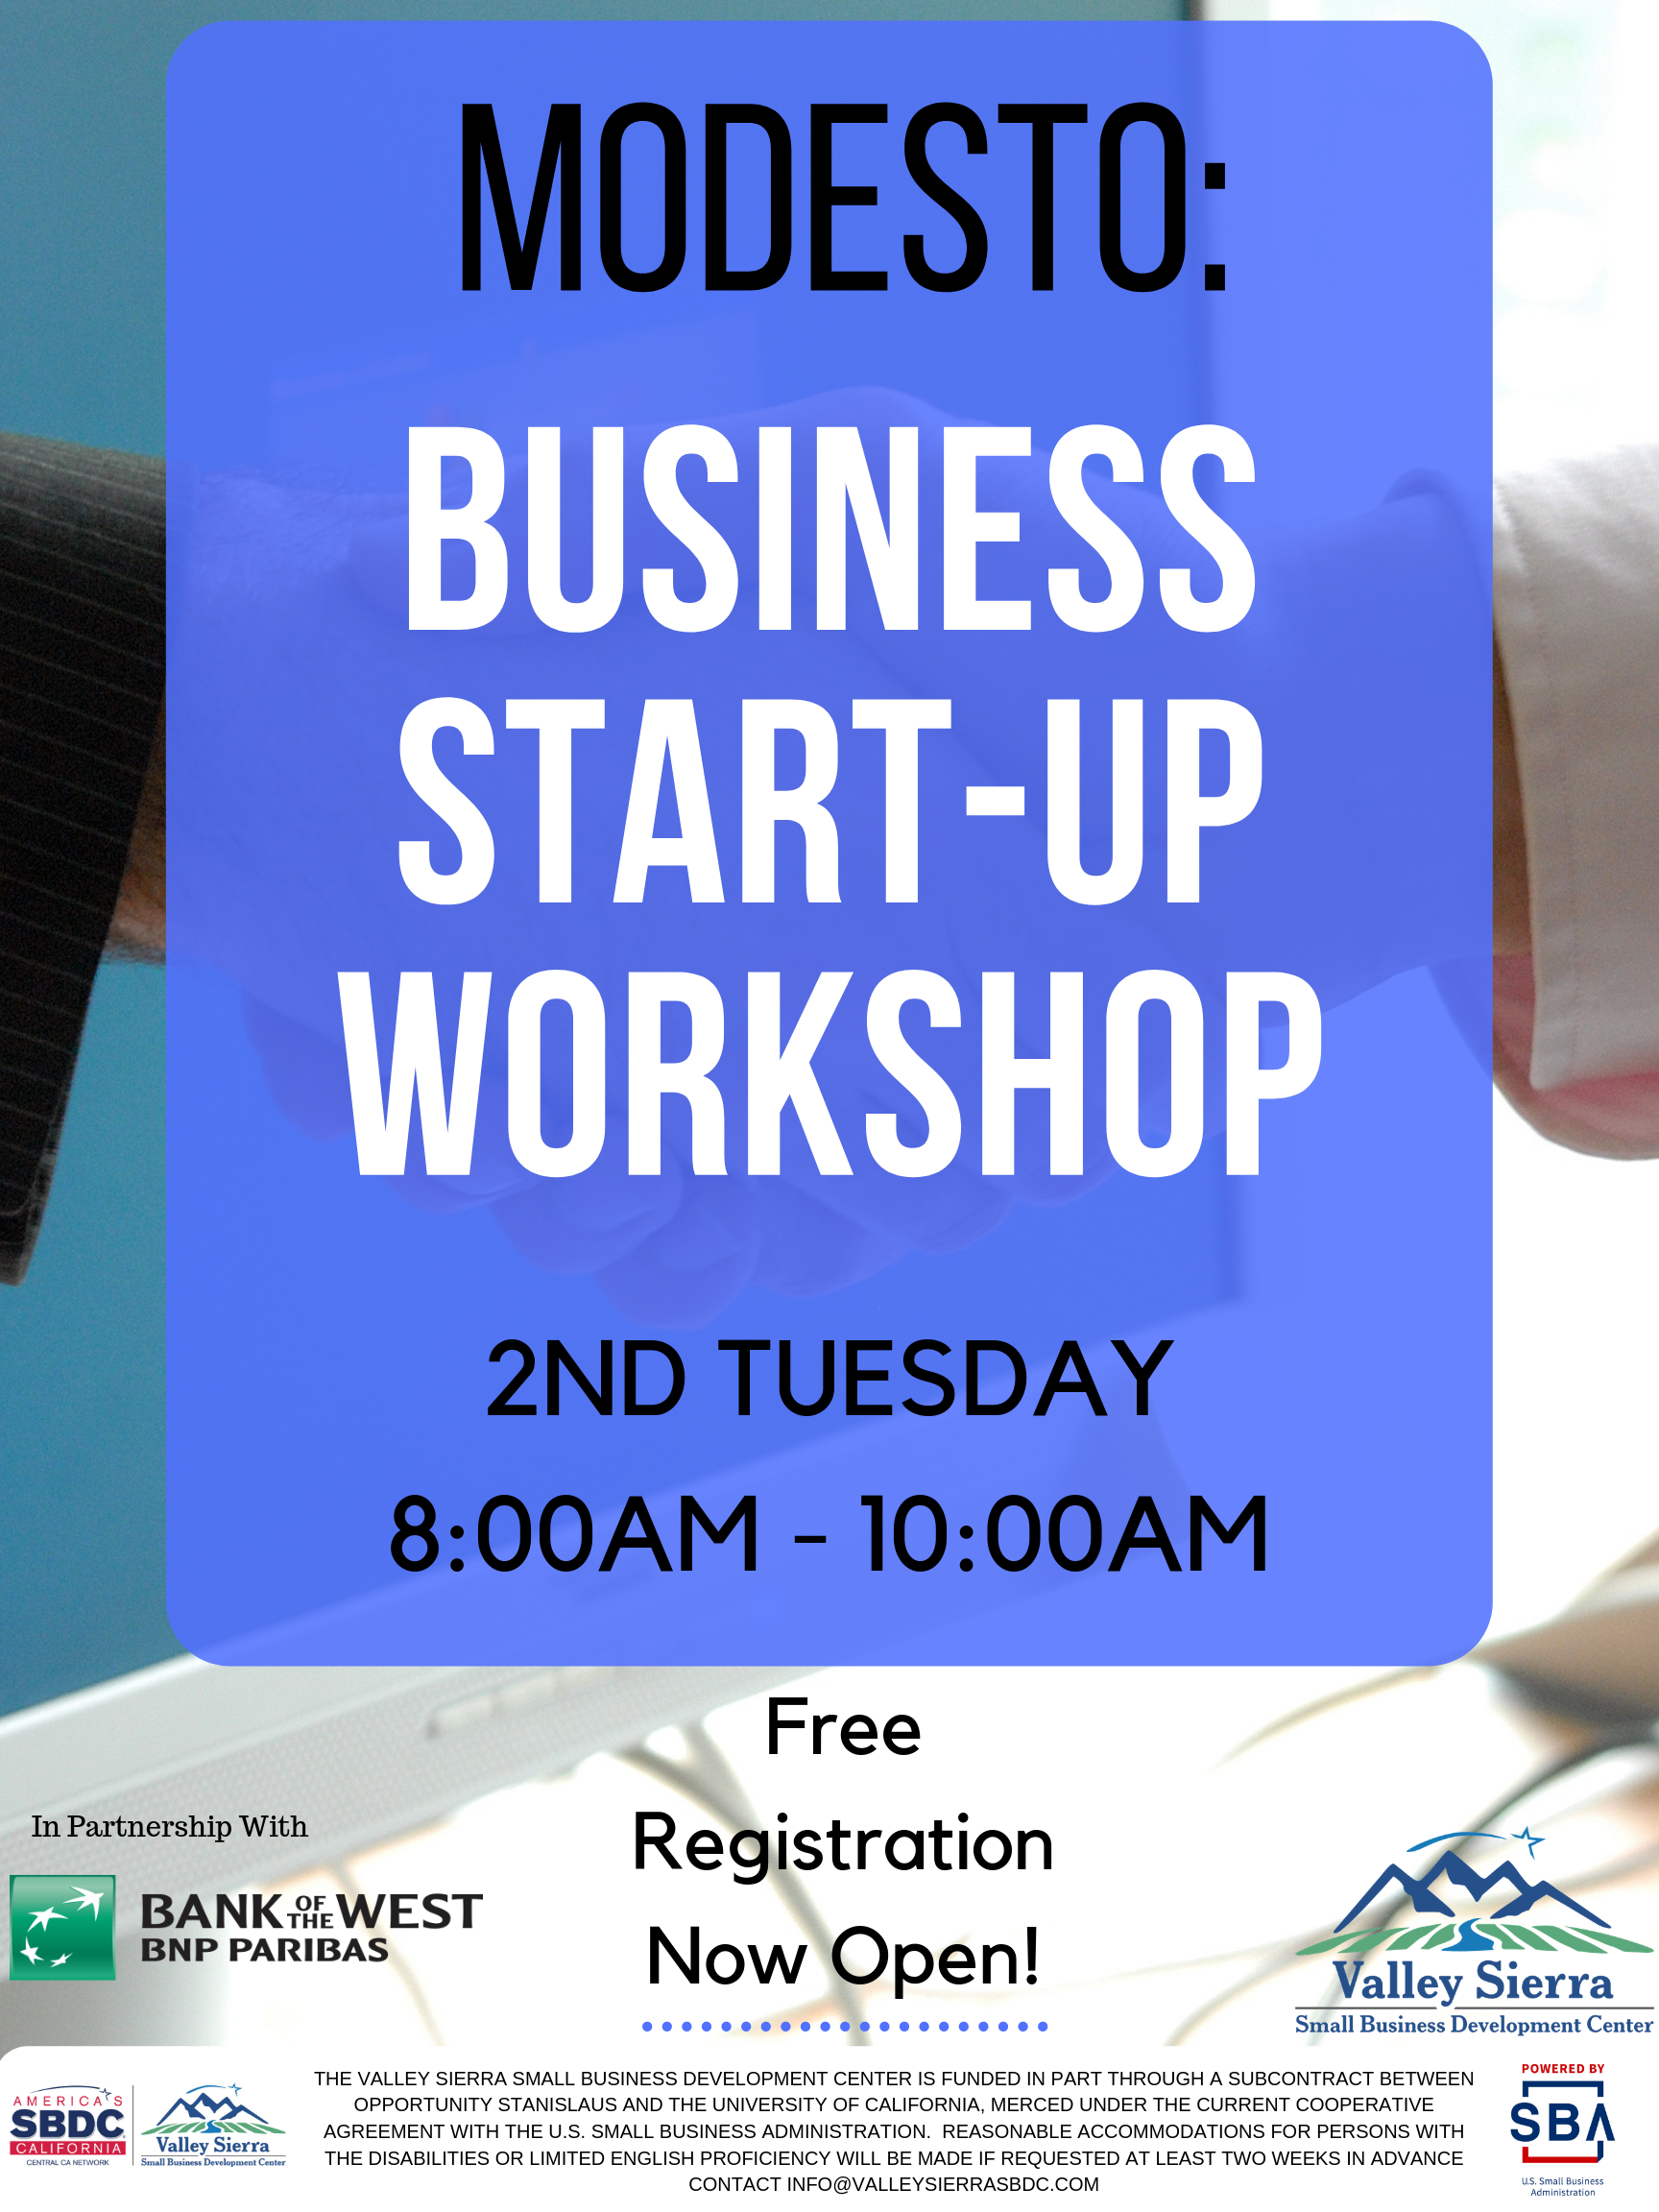 Event Flyer, Modesto: Business Start-Up Workshop, 2nd Tuesday, 8:00am - 10:00am. Free Registration Now Open! Tuesday, November 11th, 2019 at the Valley Sierra SBDC. 1625 I Street, Modesto, Ca.